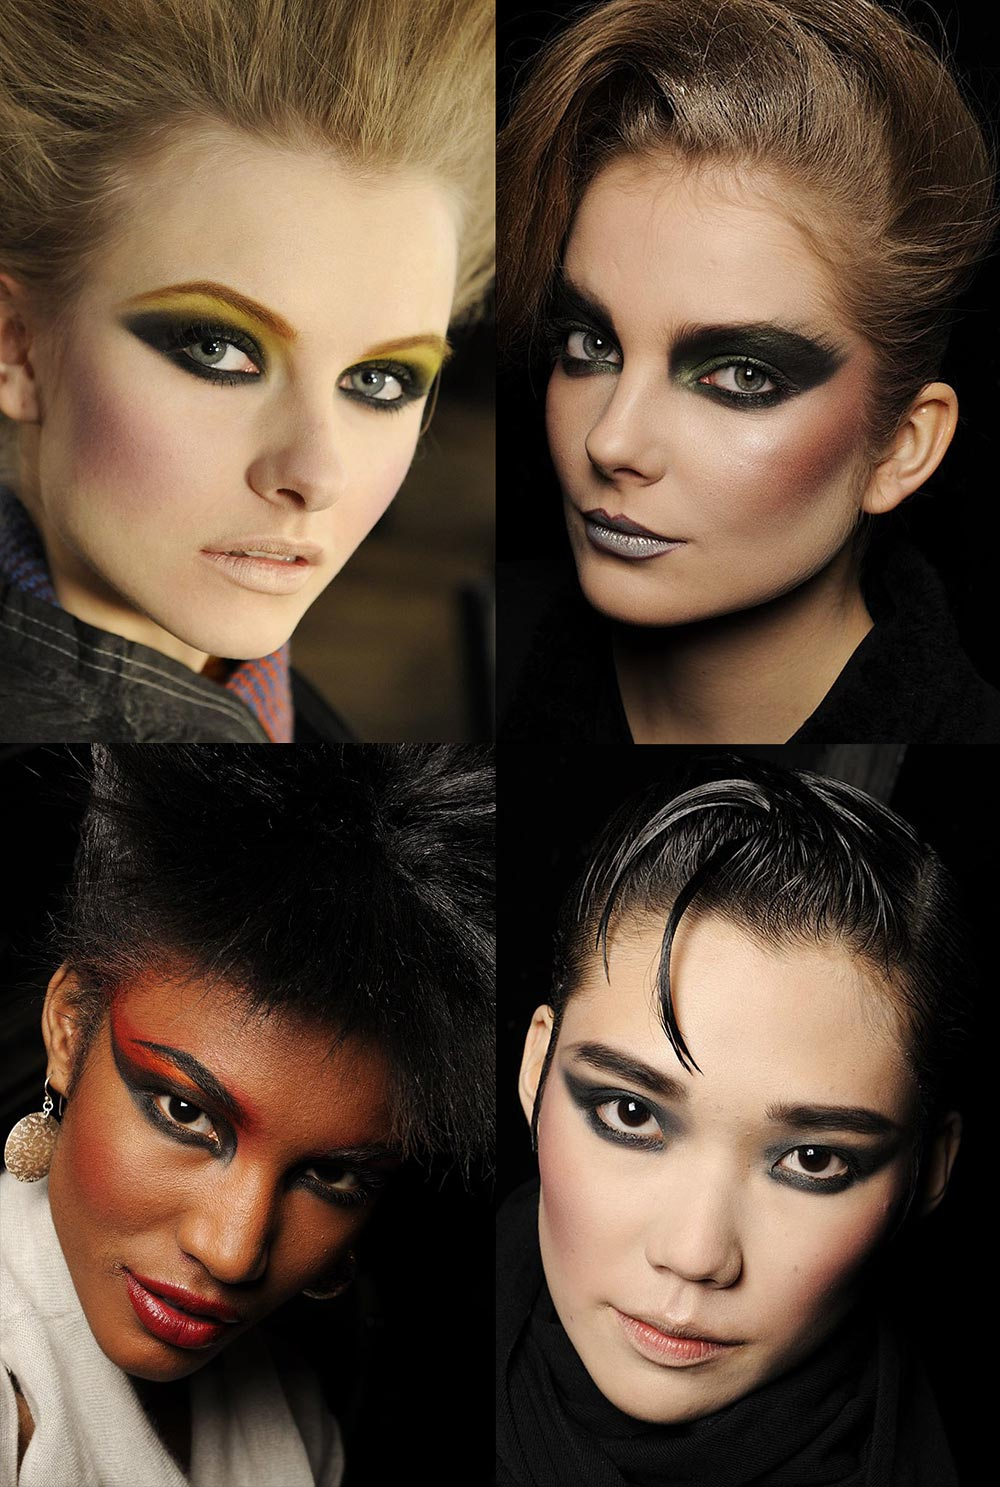 marc-jacobs-fall-2009-runway-makeup-by-nars